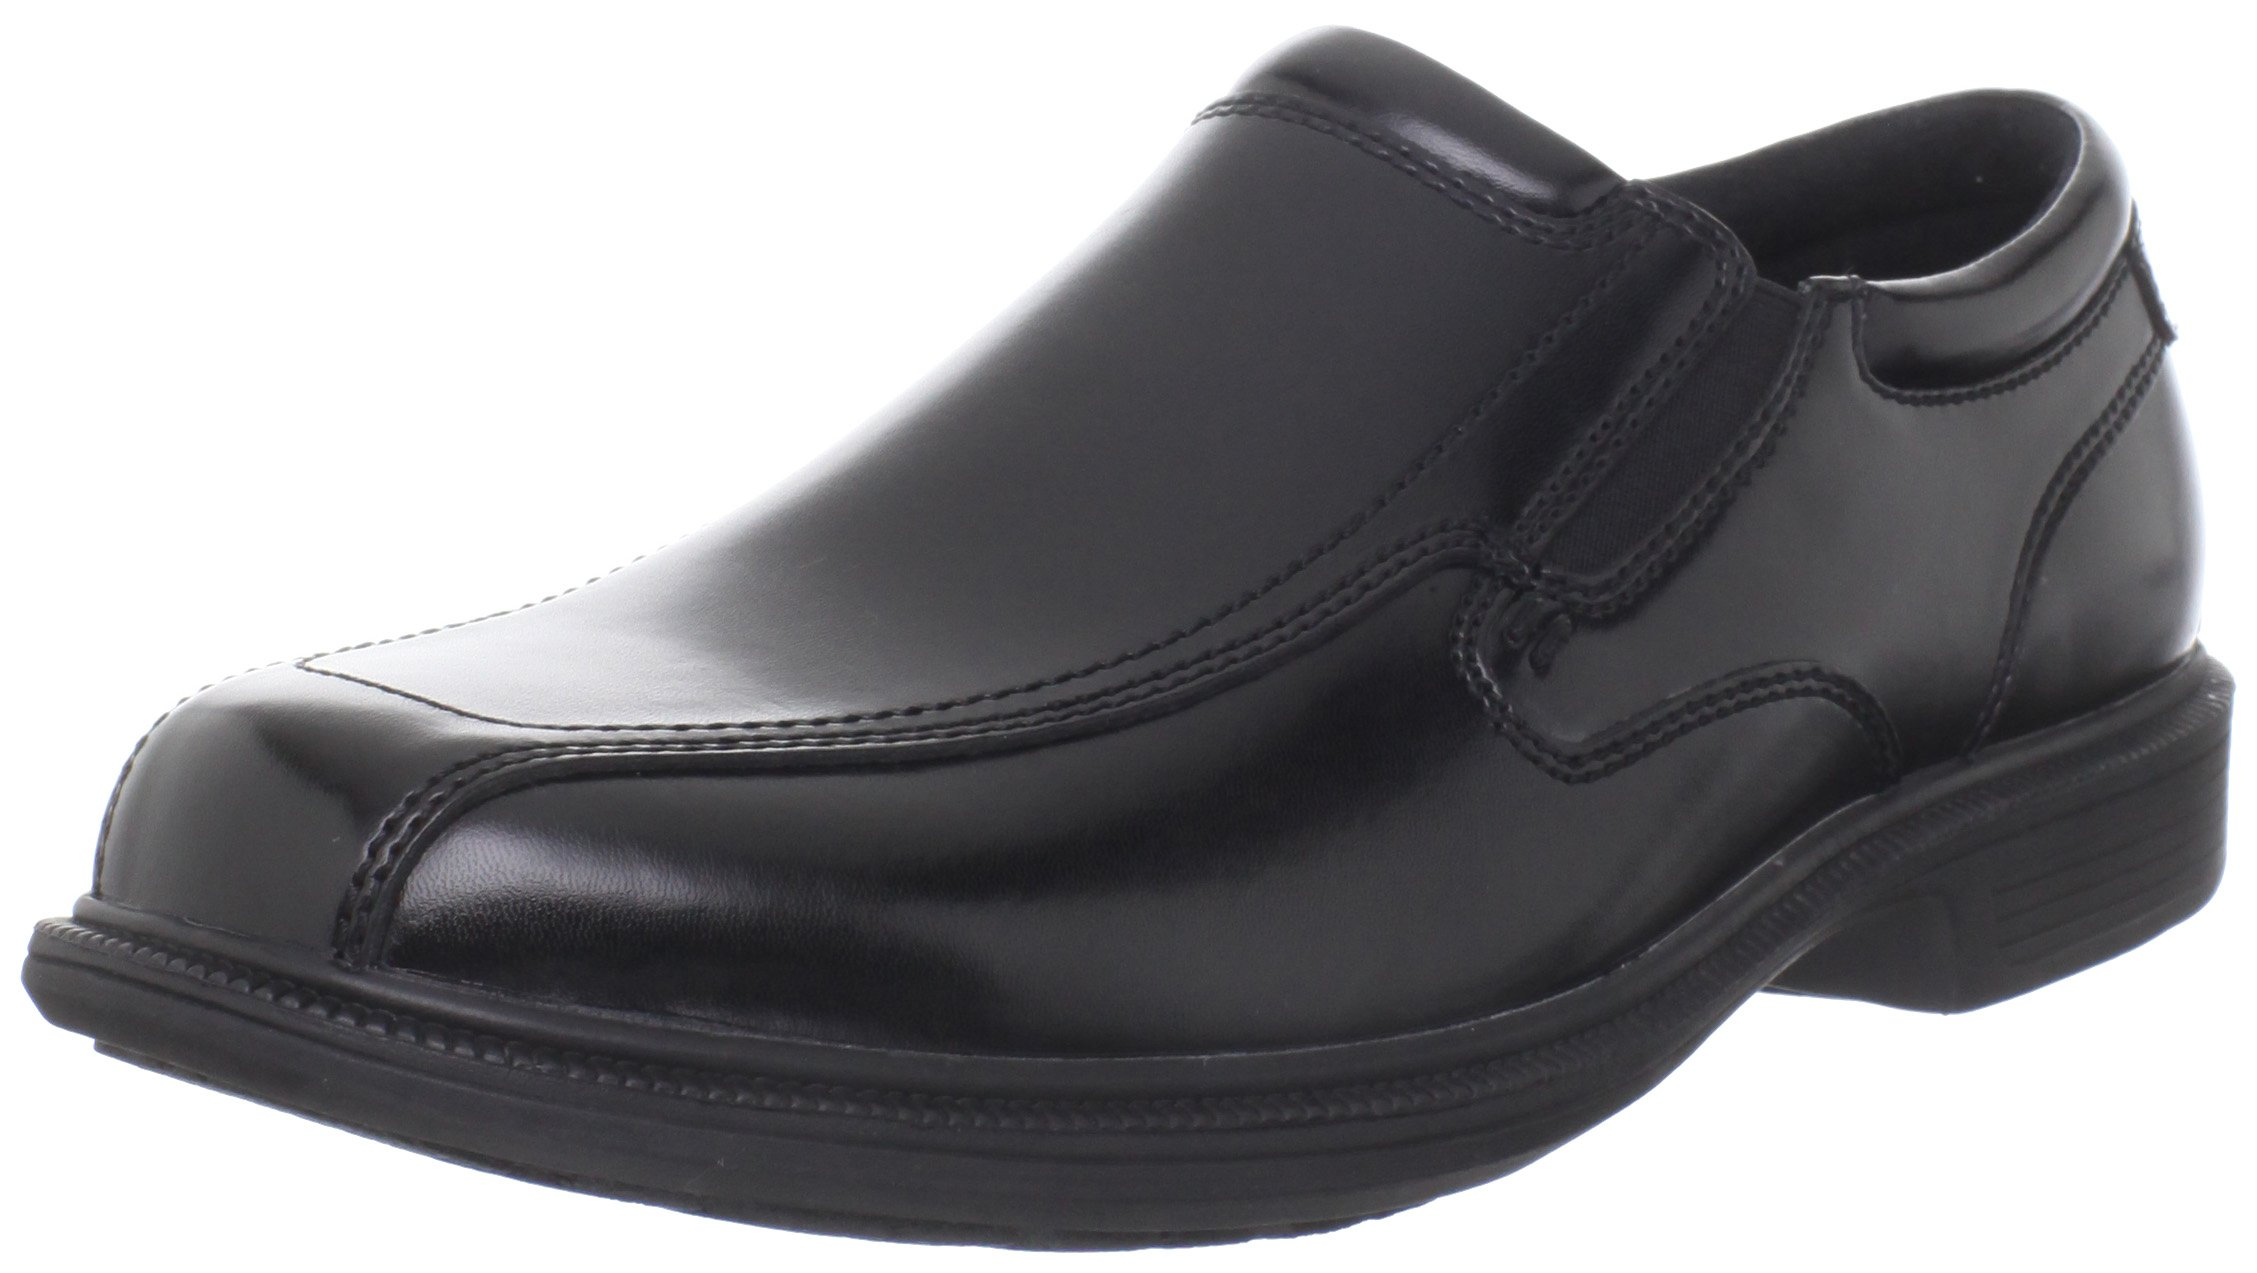 Nunn Bush Men's Bleeker St Slip-On Loafer,Black,14 W US by Nunn Bush